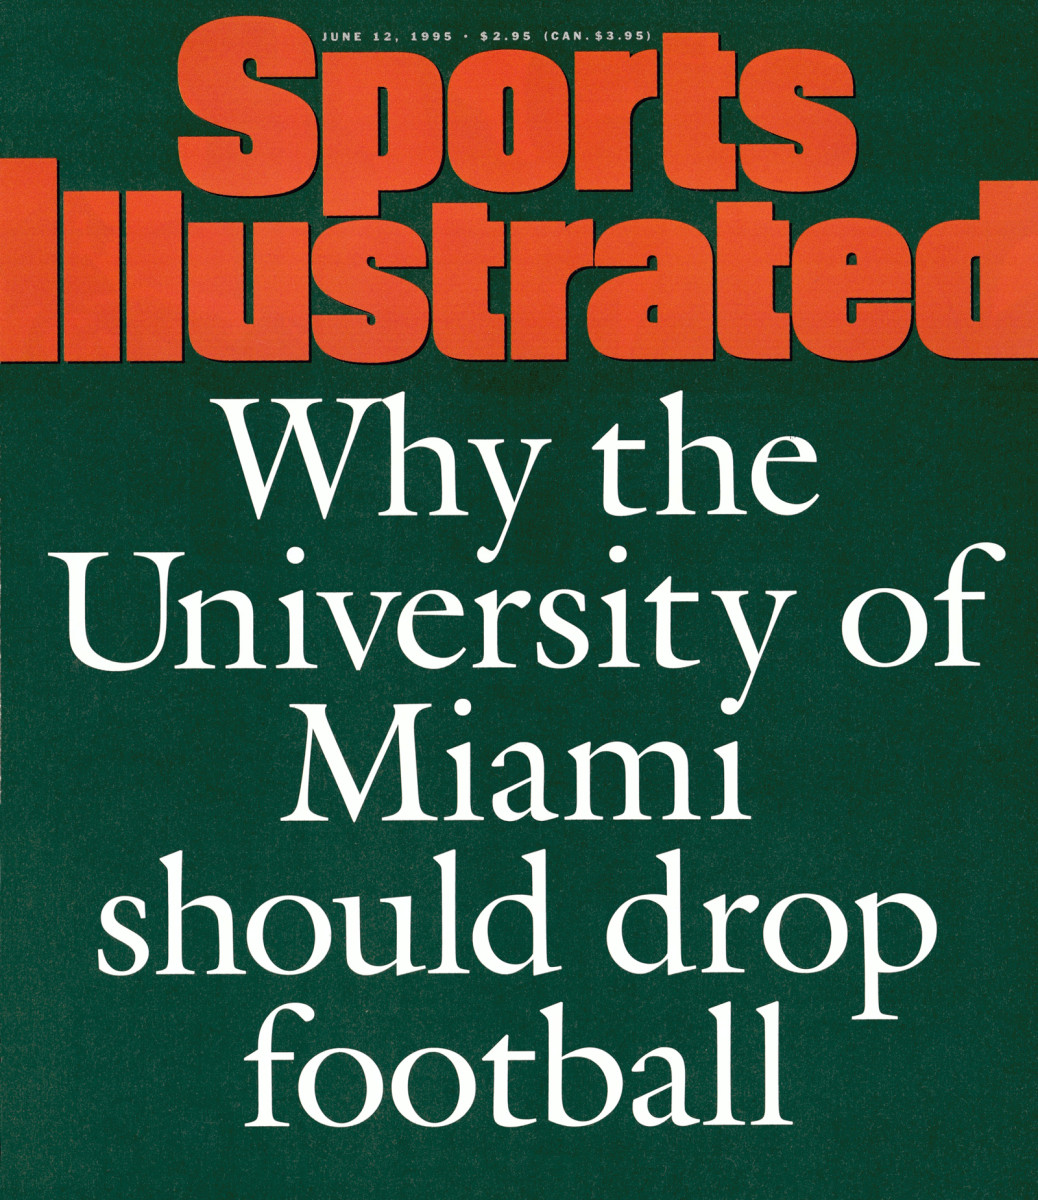 Sports Illustrated's June 12, 1995 cover.